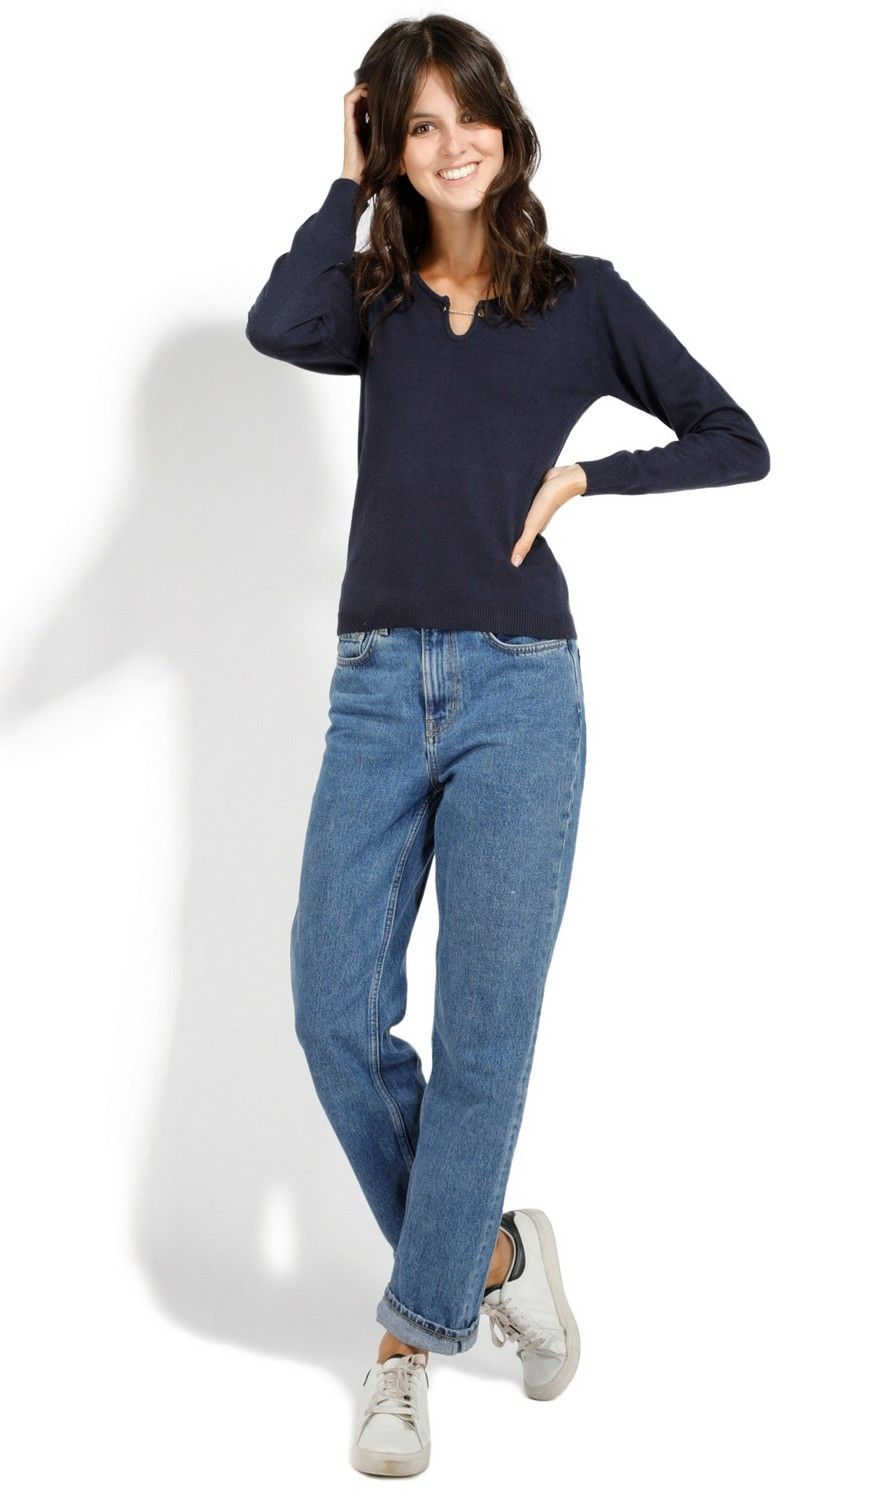 Assuili Open Collar Long Sleeve Sweater with Button in Navy